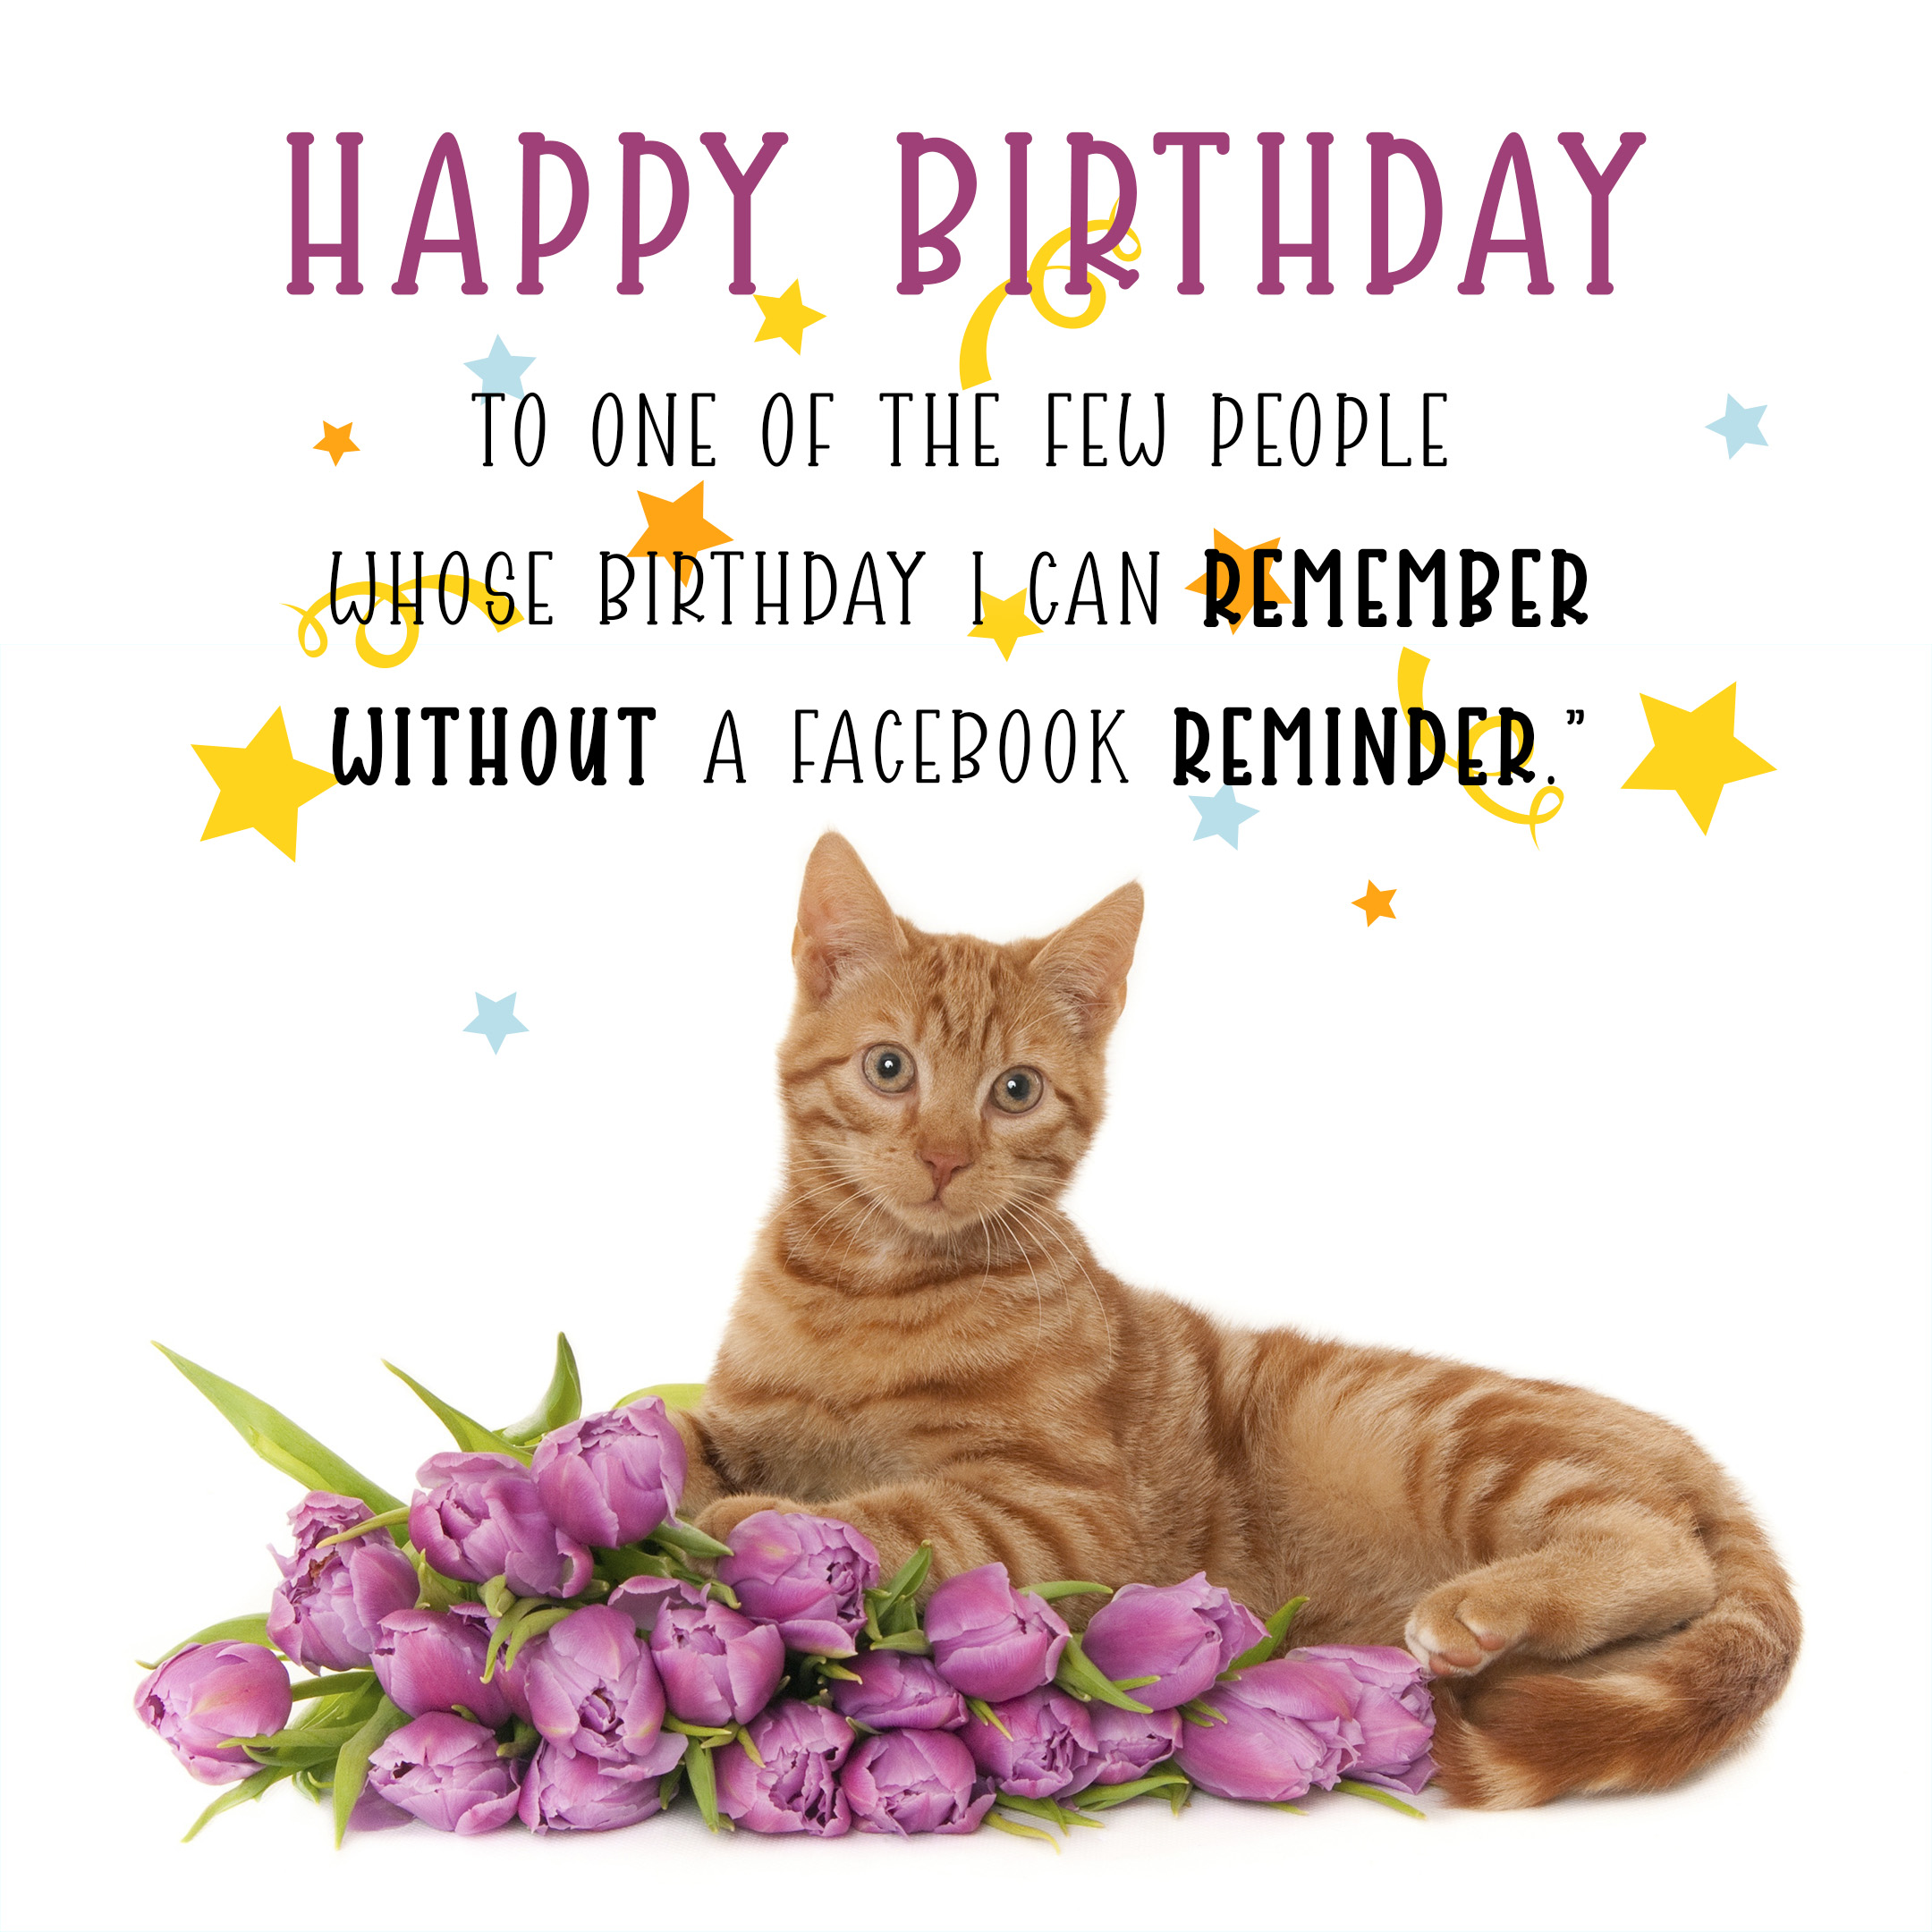 Free Funny Happy Birthday Image With Flowers And Cat - birthdayimg.com